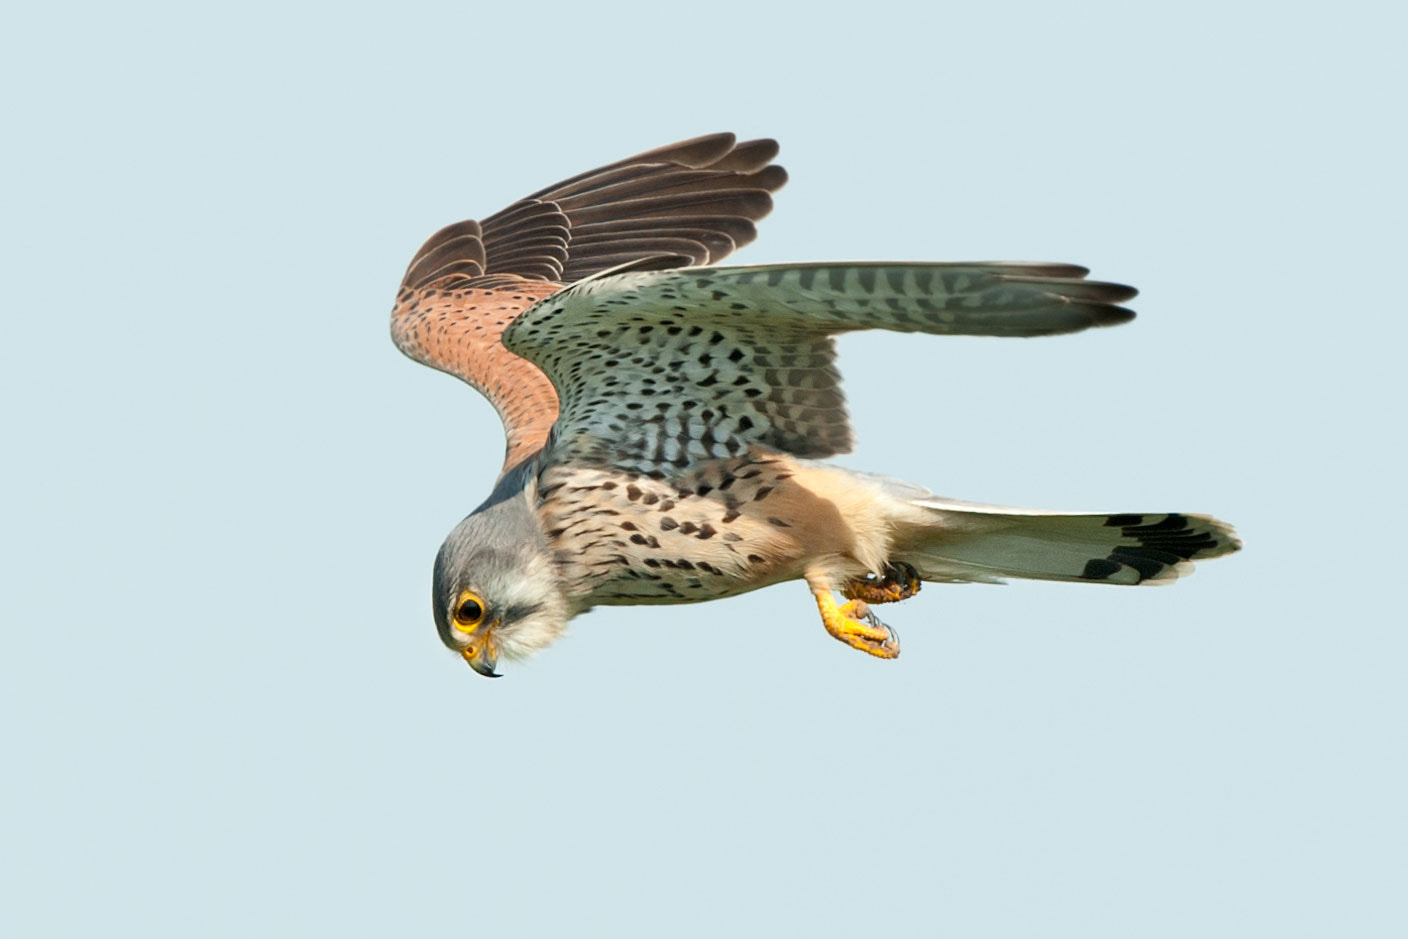 Photograph Turmfalke im Flug | Falcon (kestrel) in flight by Franz Engels on 500px